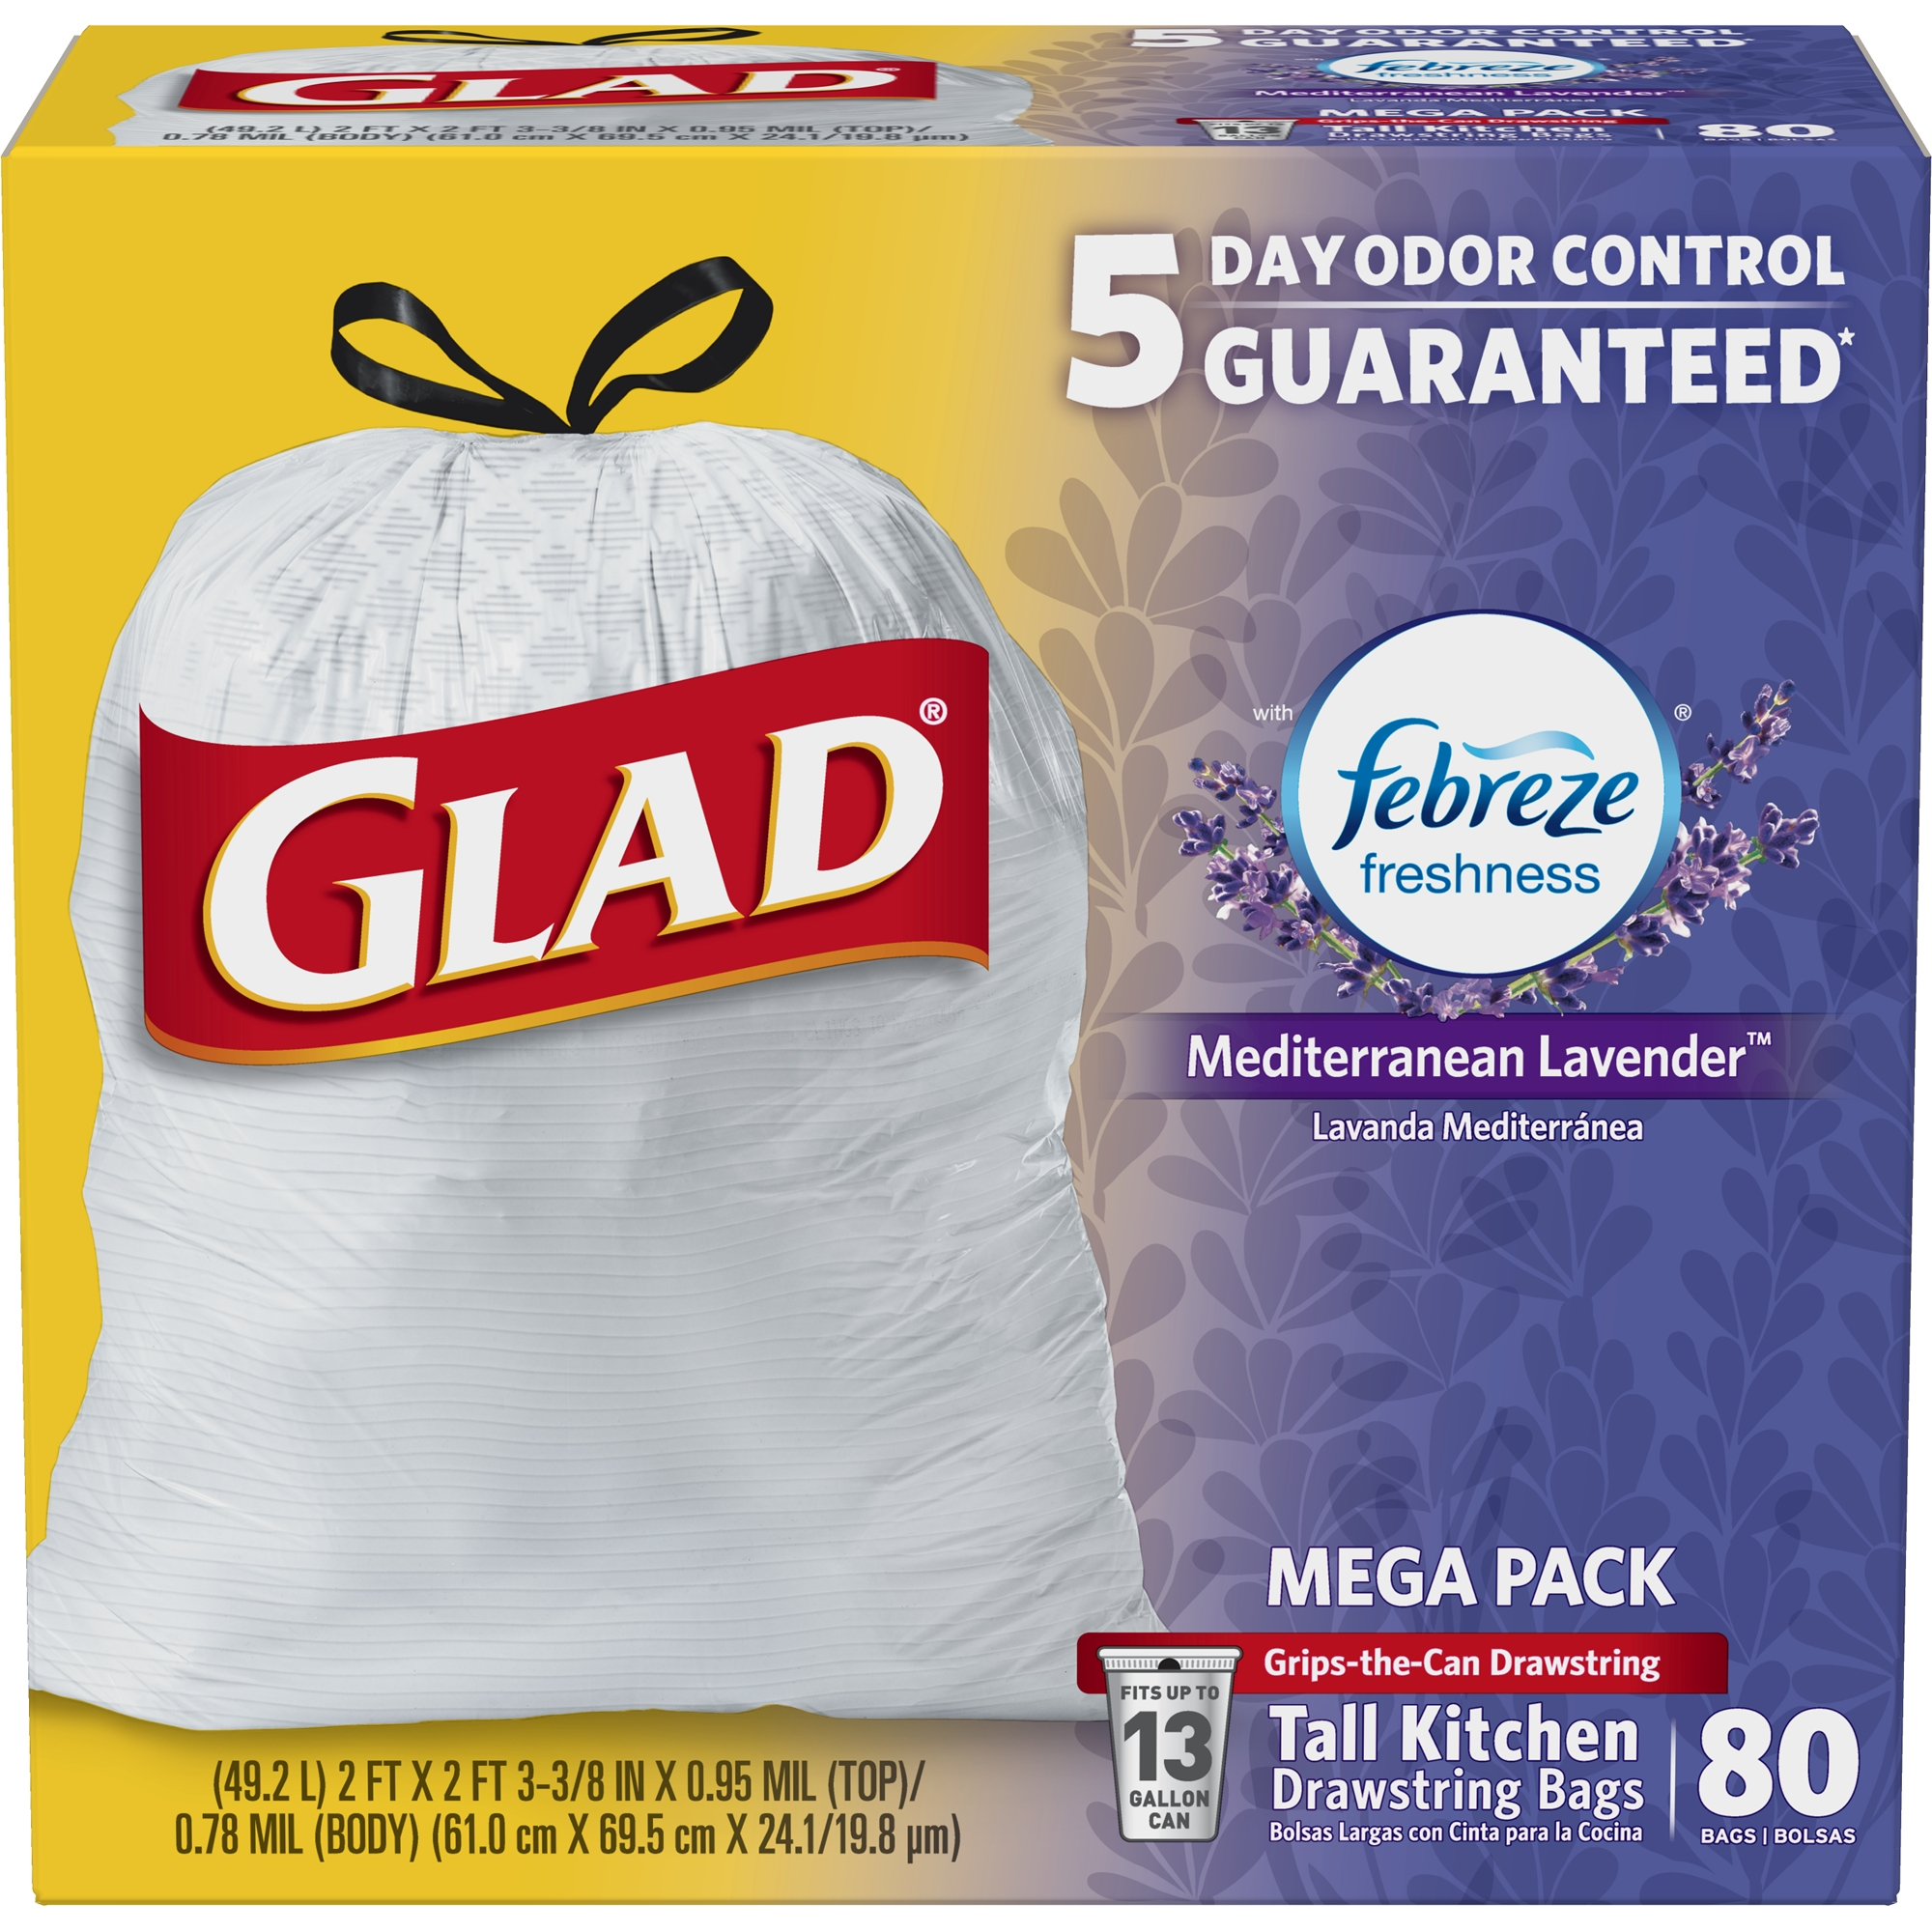 Glad OdorShield Tall Kitchen Drawstring Trash Bags - Febreze Mediterranean Lavender - 13 Gallon - 80 ct